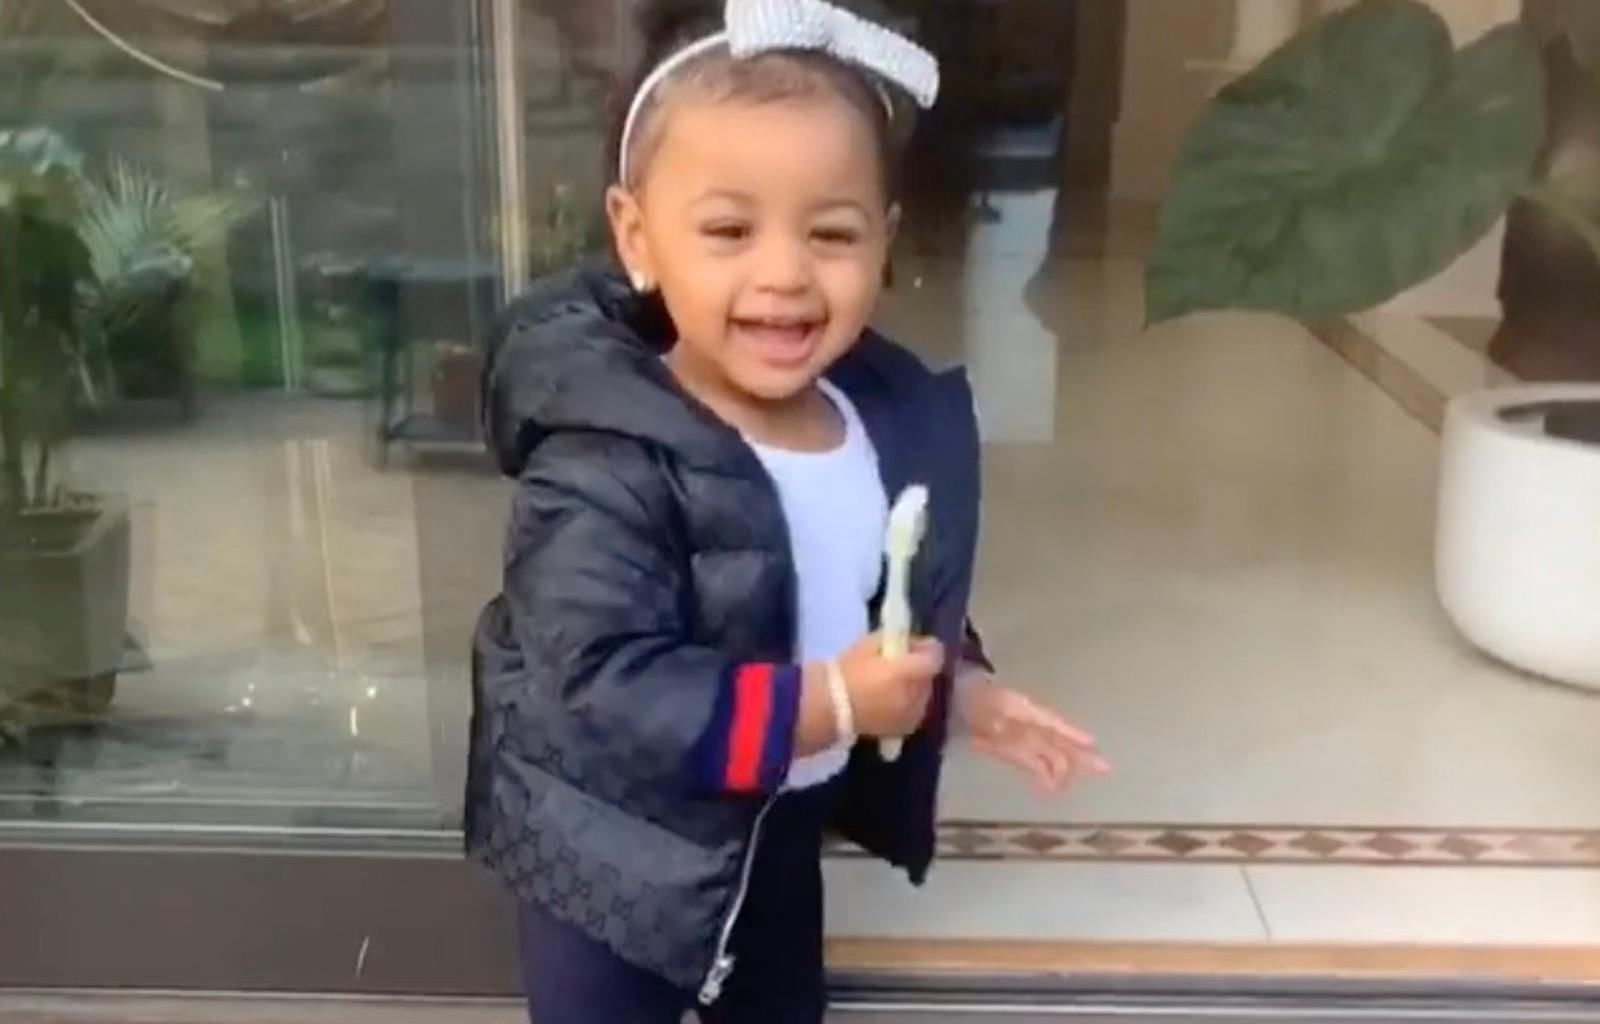 Cardi B's Daughter Proves Once Again That She's Already A Fashion Icon - Check Out Her Latest OOTD!